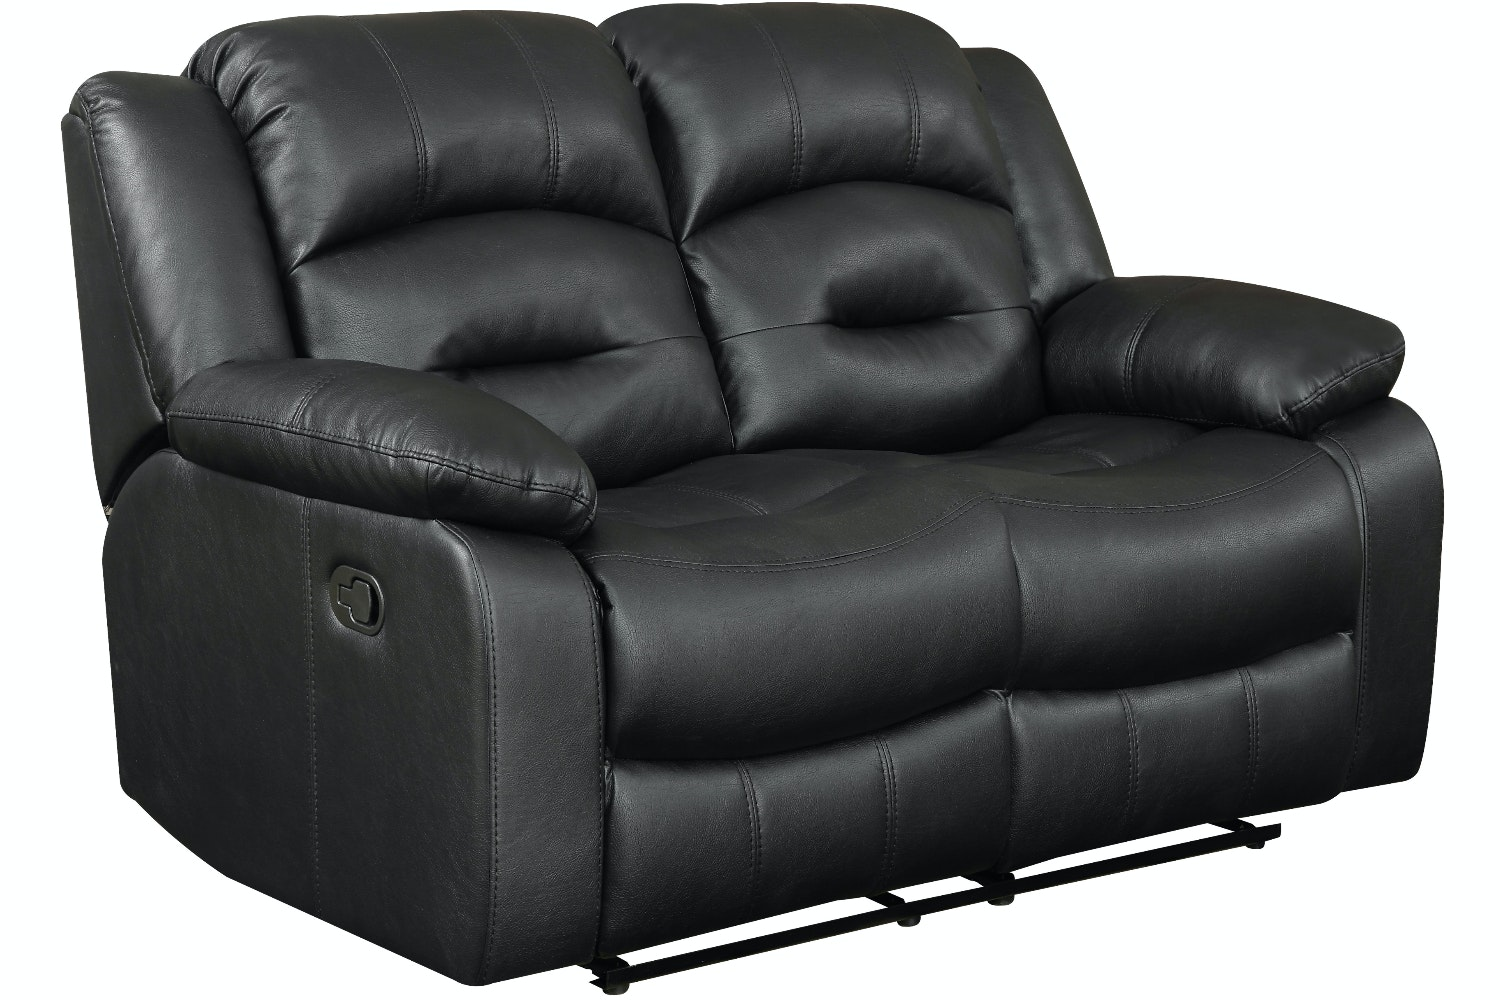 Hunter 2 Seater Sofa (Recliner) Black